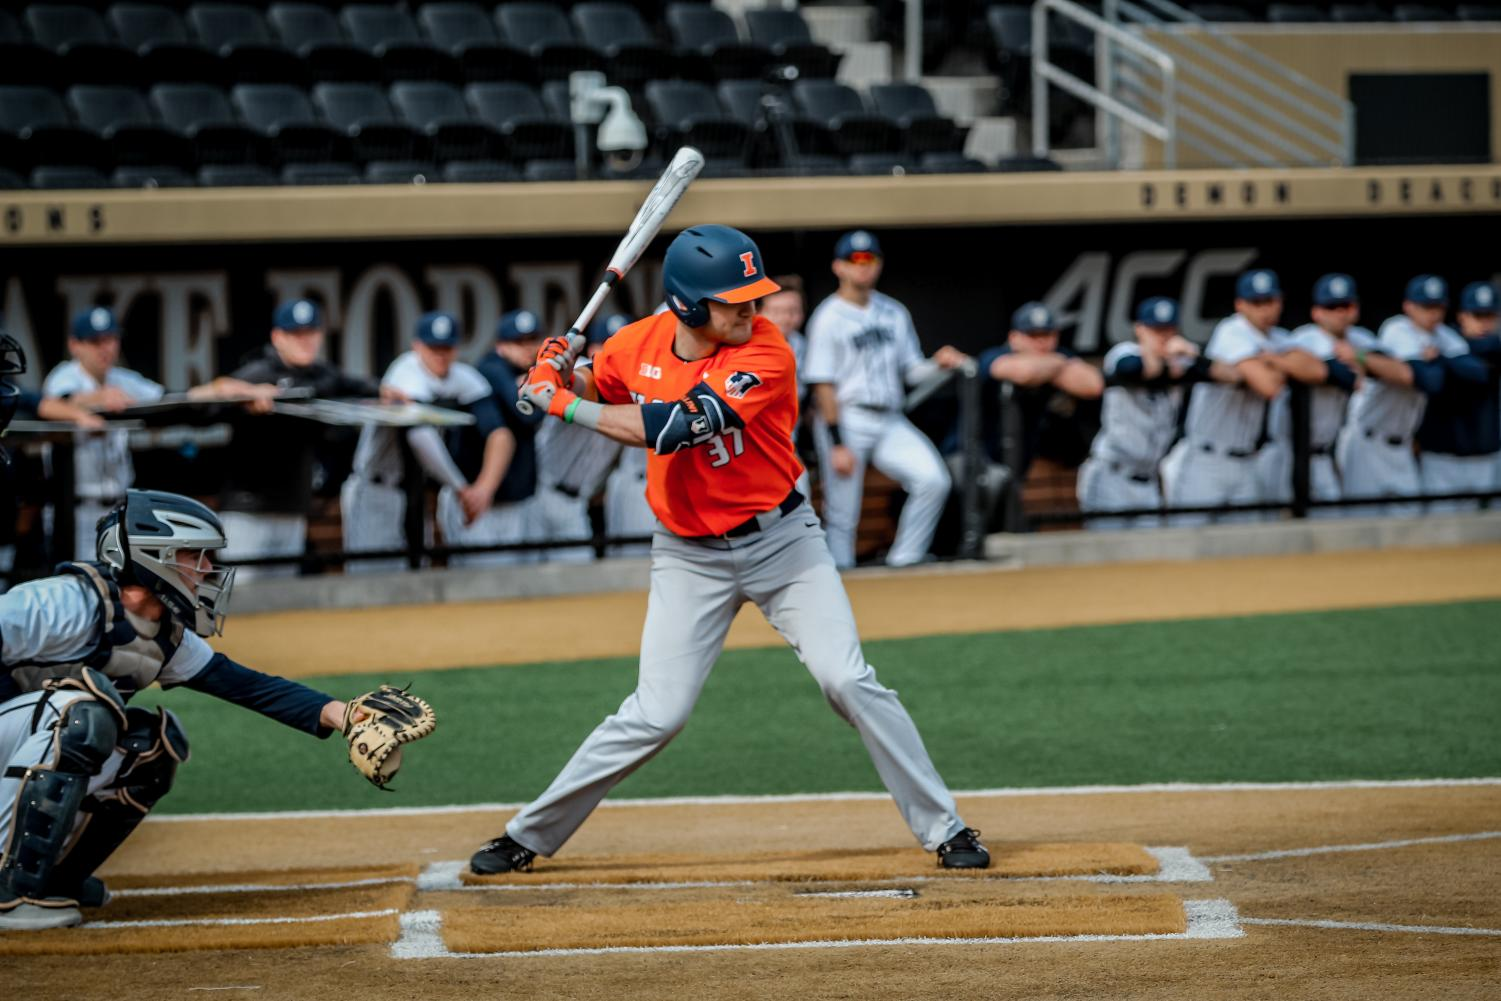 Illinois senior outfielder Zac Taylor winds up to swing during Illinois' weekend tournament at Wake Forest. This weekend opened the Illini's spring campaign.